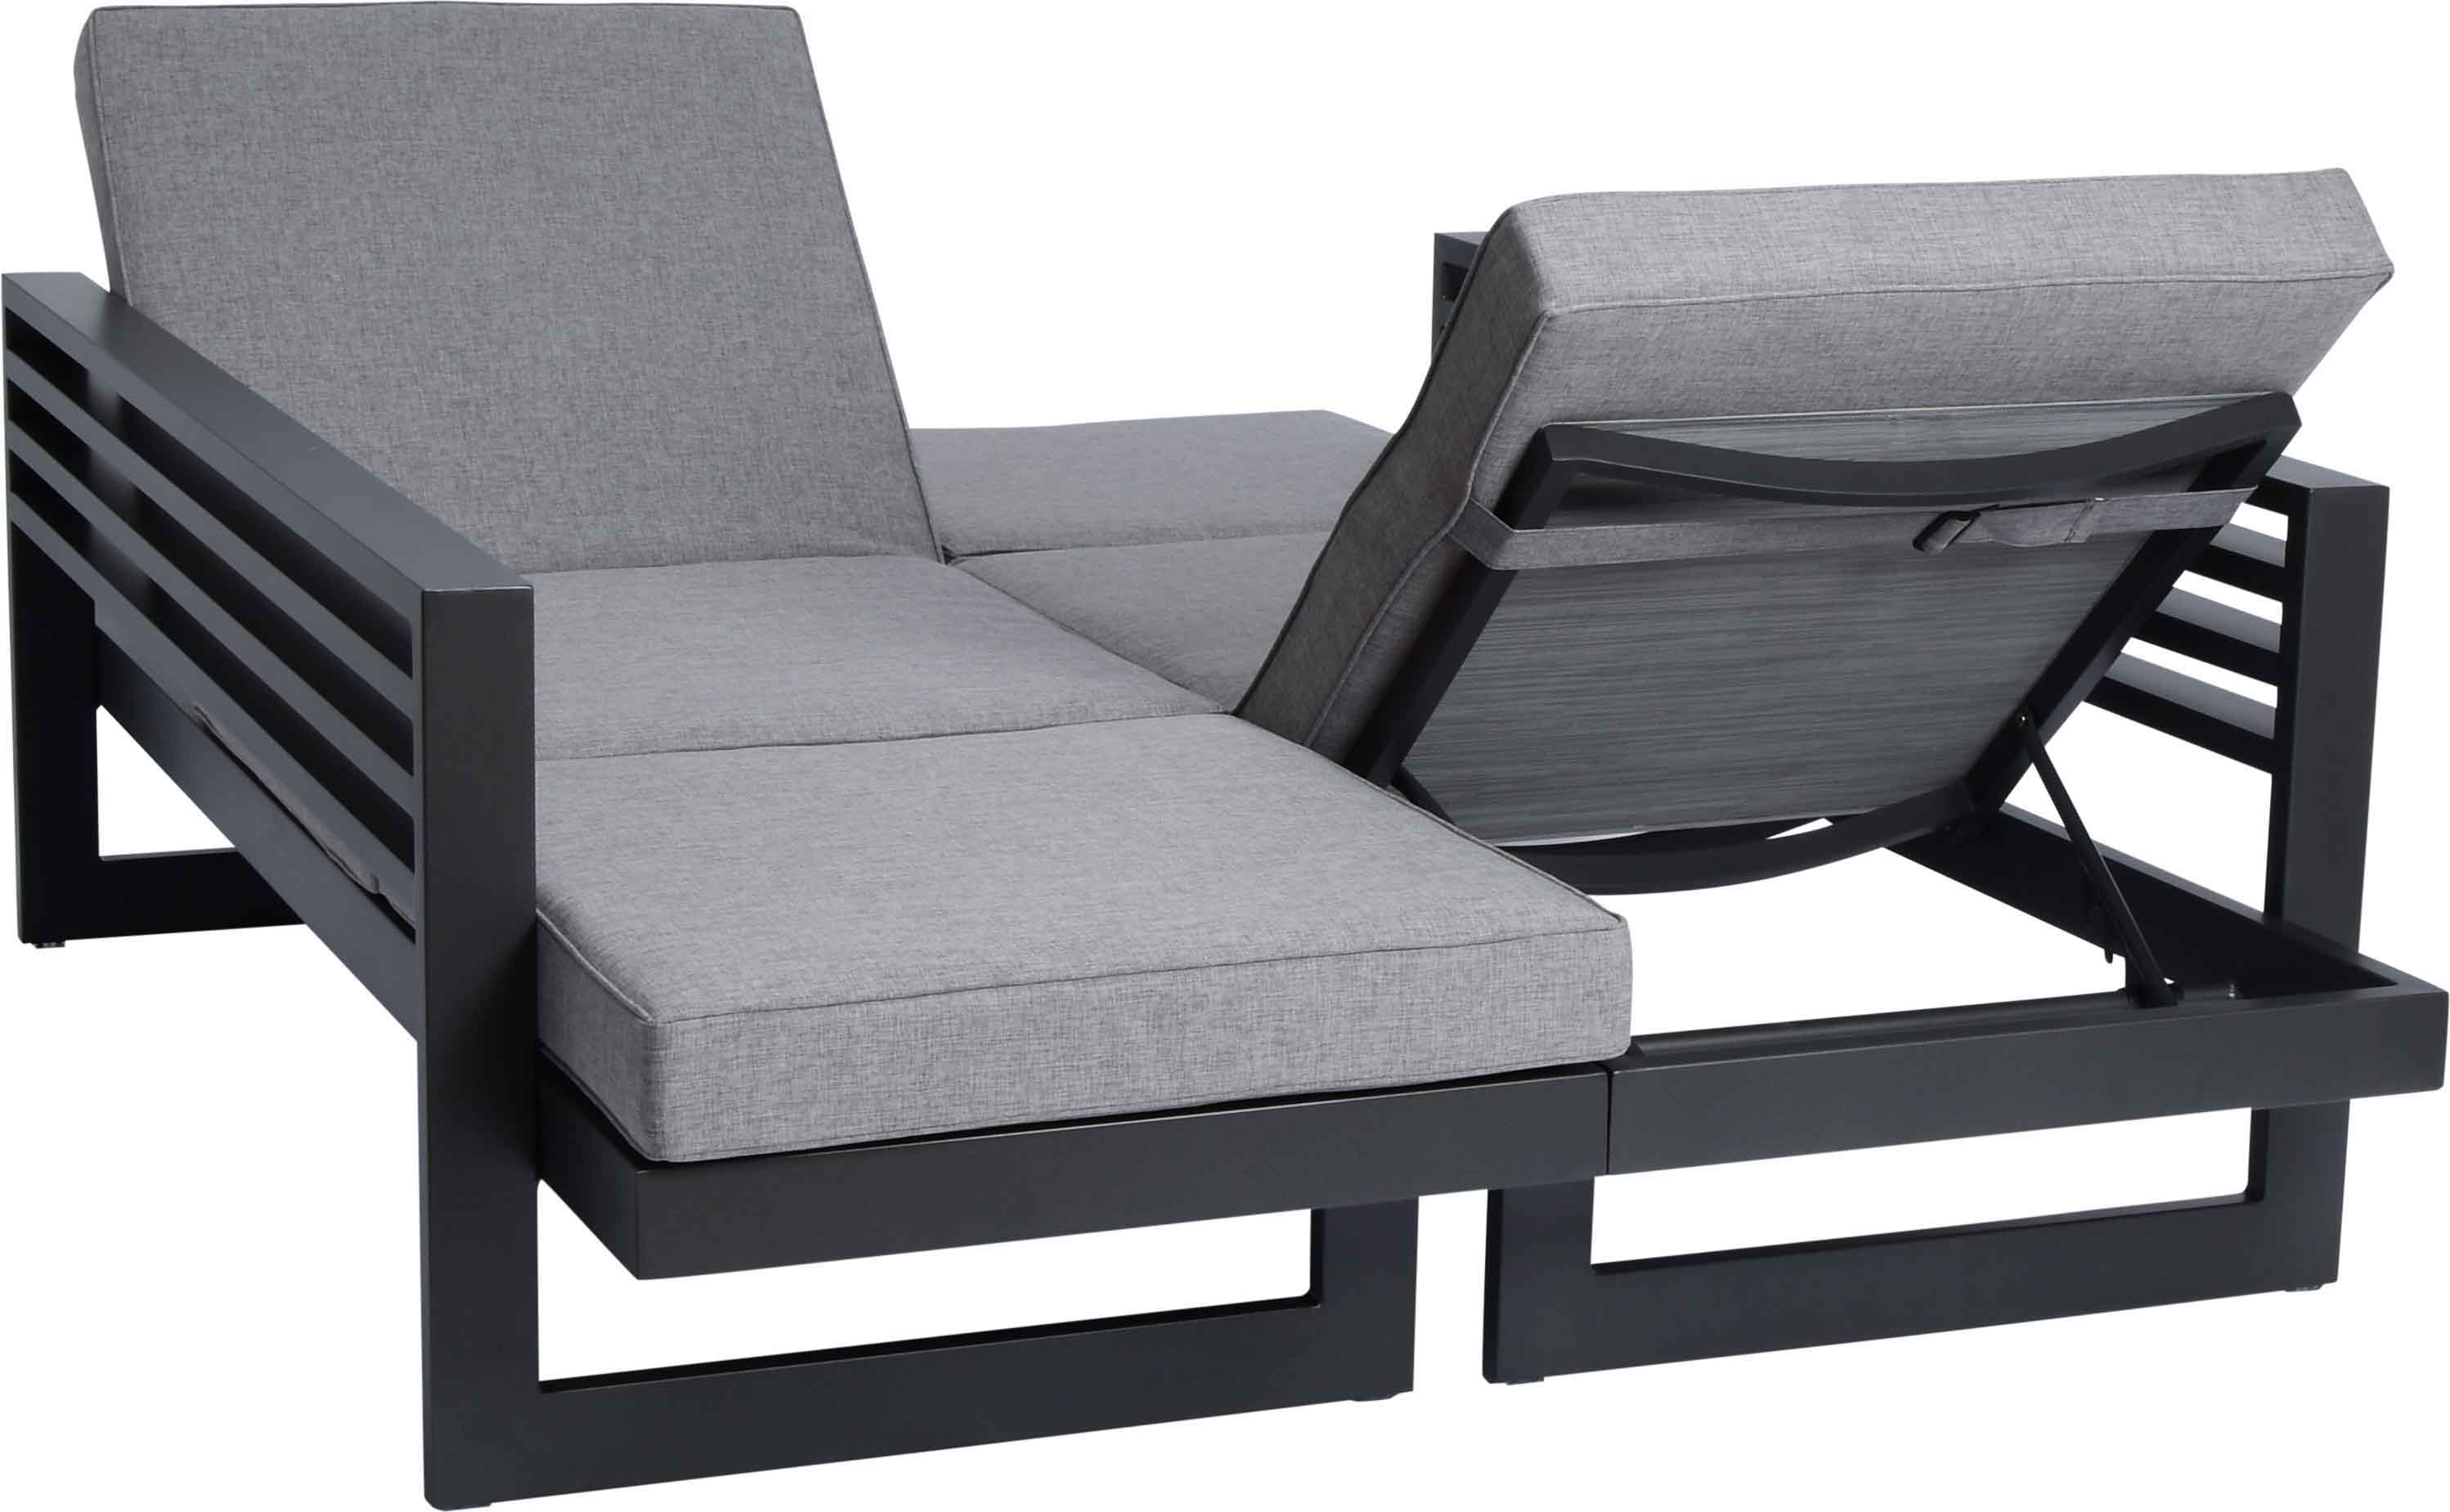 Sectional Balcony Multipurpose Outdoor Furniture 2